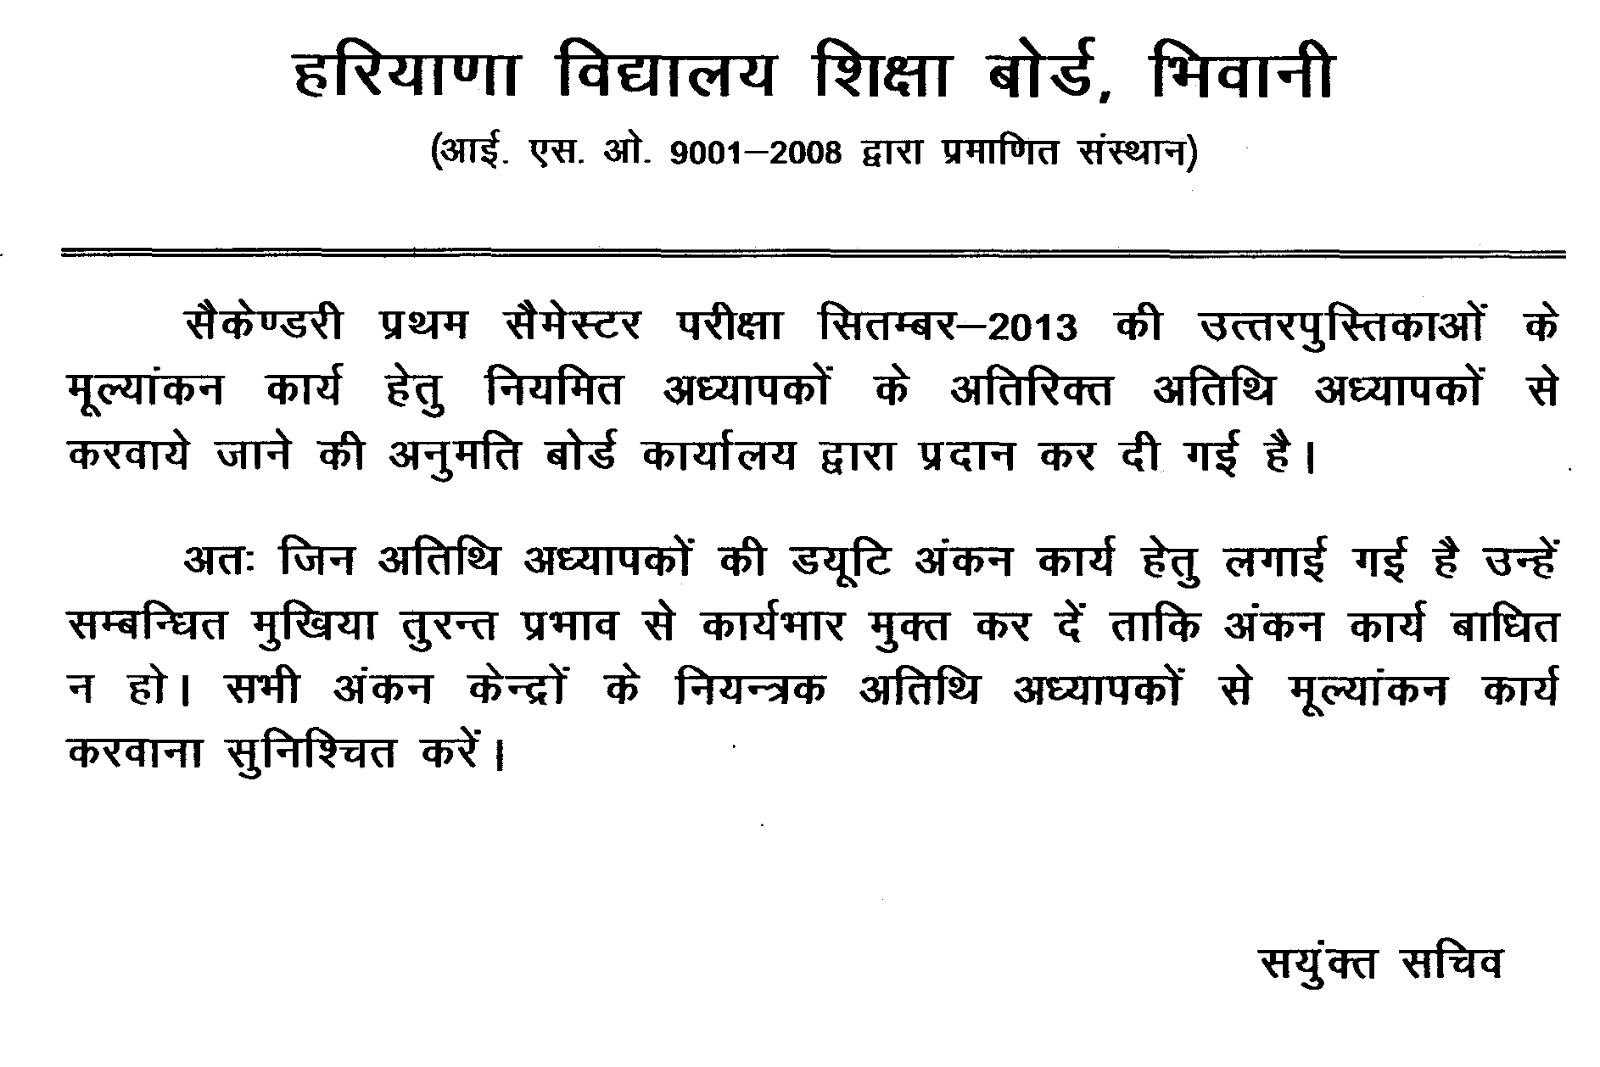 Letter writing services hindi format class 10